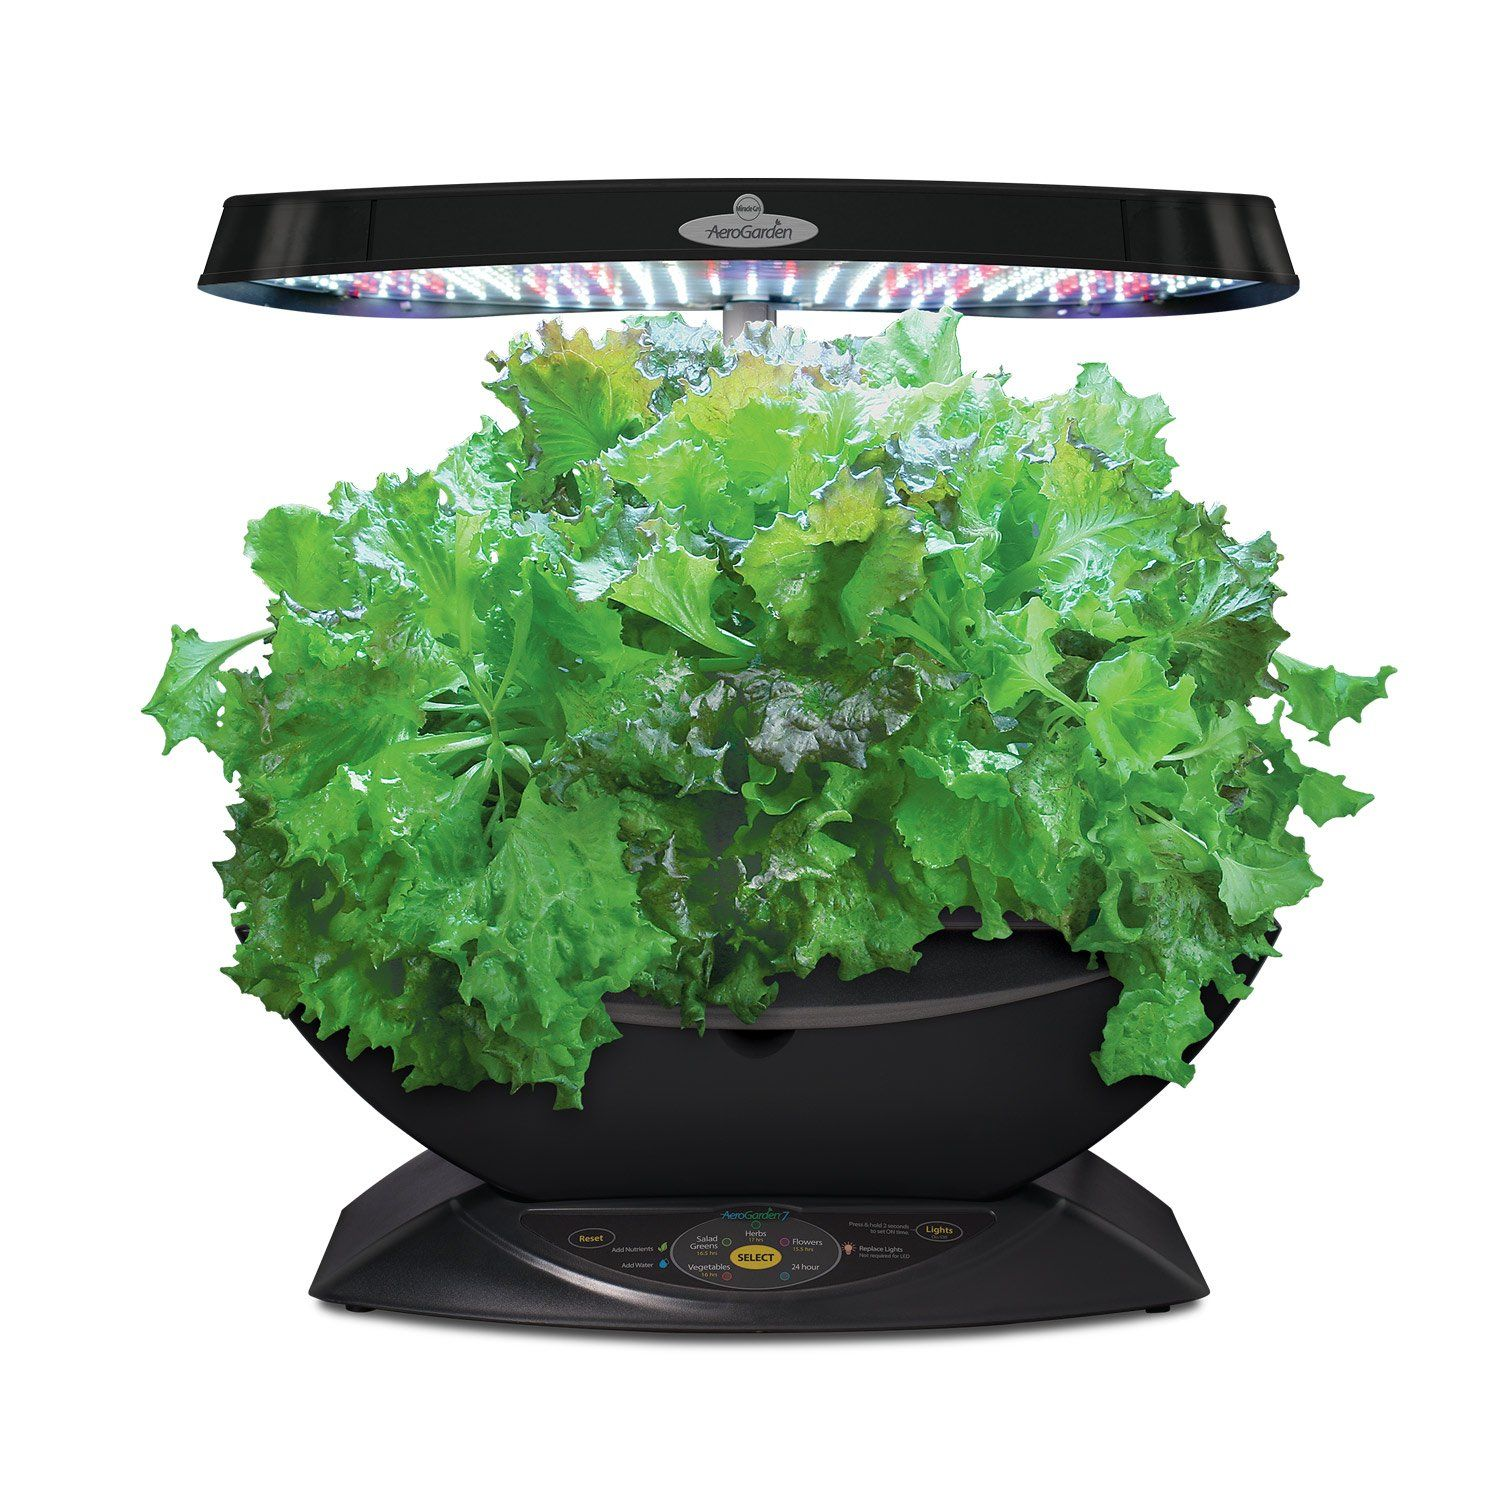 Top 15 Best Indoor Herb Garden Kits Reviews 2019(Updated